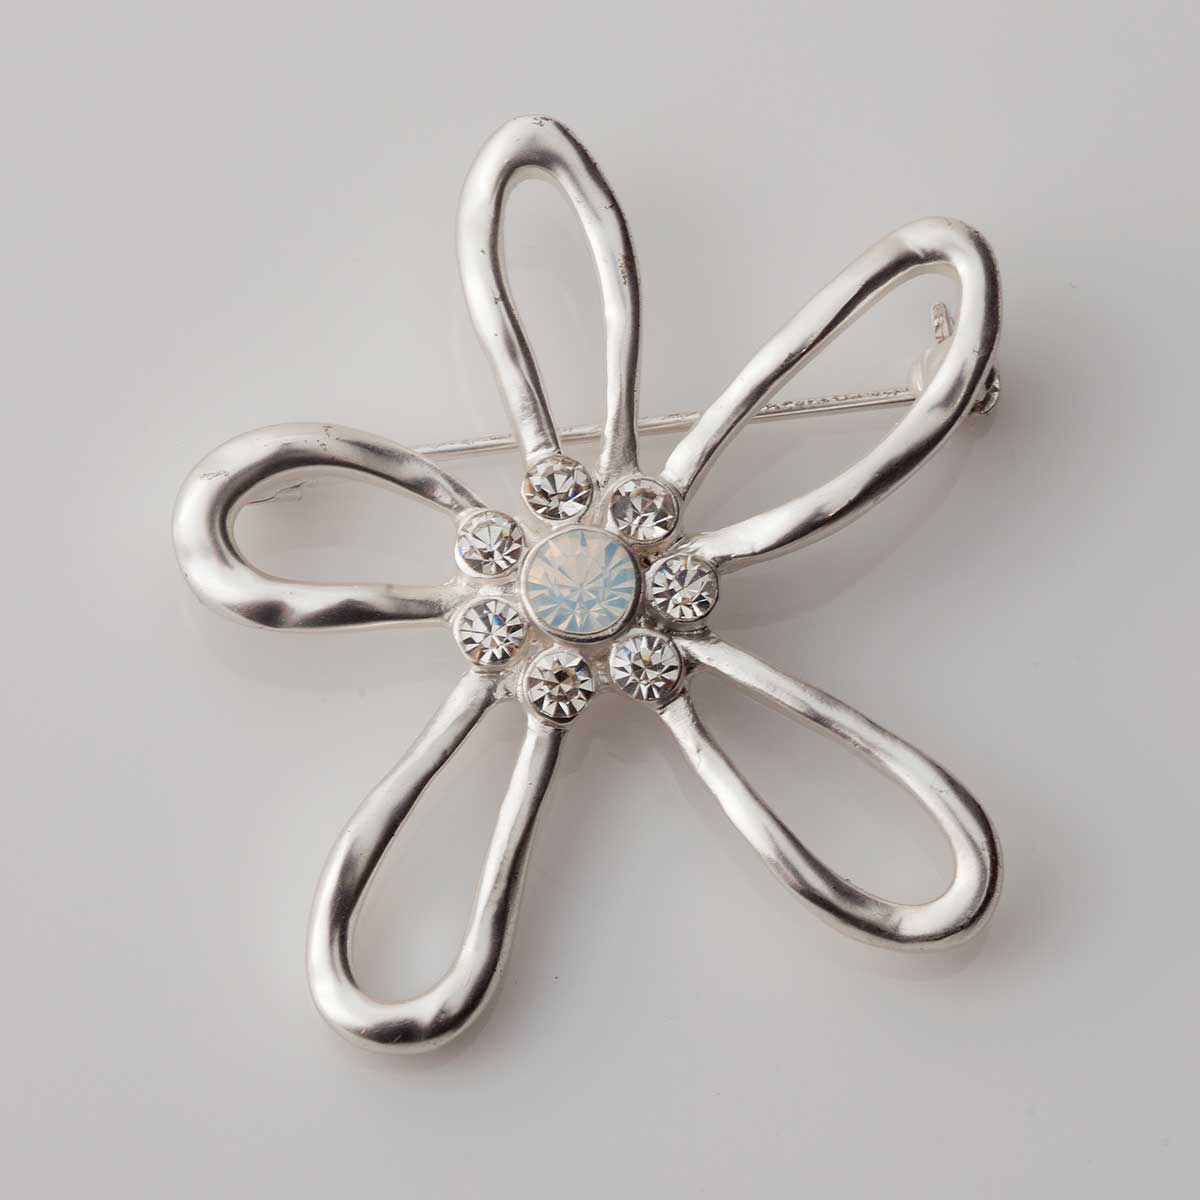 SILVERTONE OPEN DAISY PIN WITH CRYSTALS